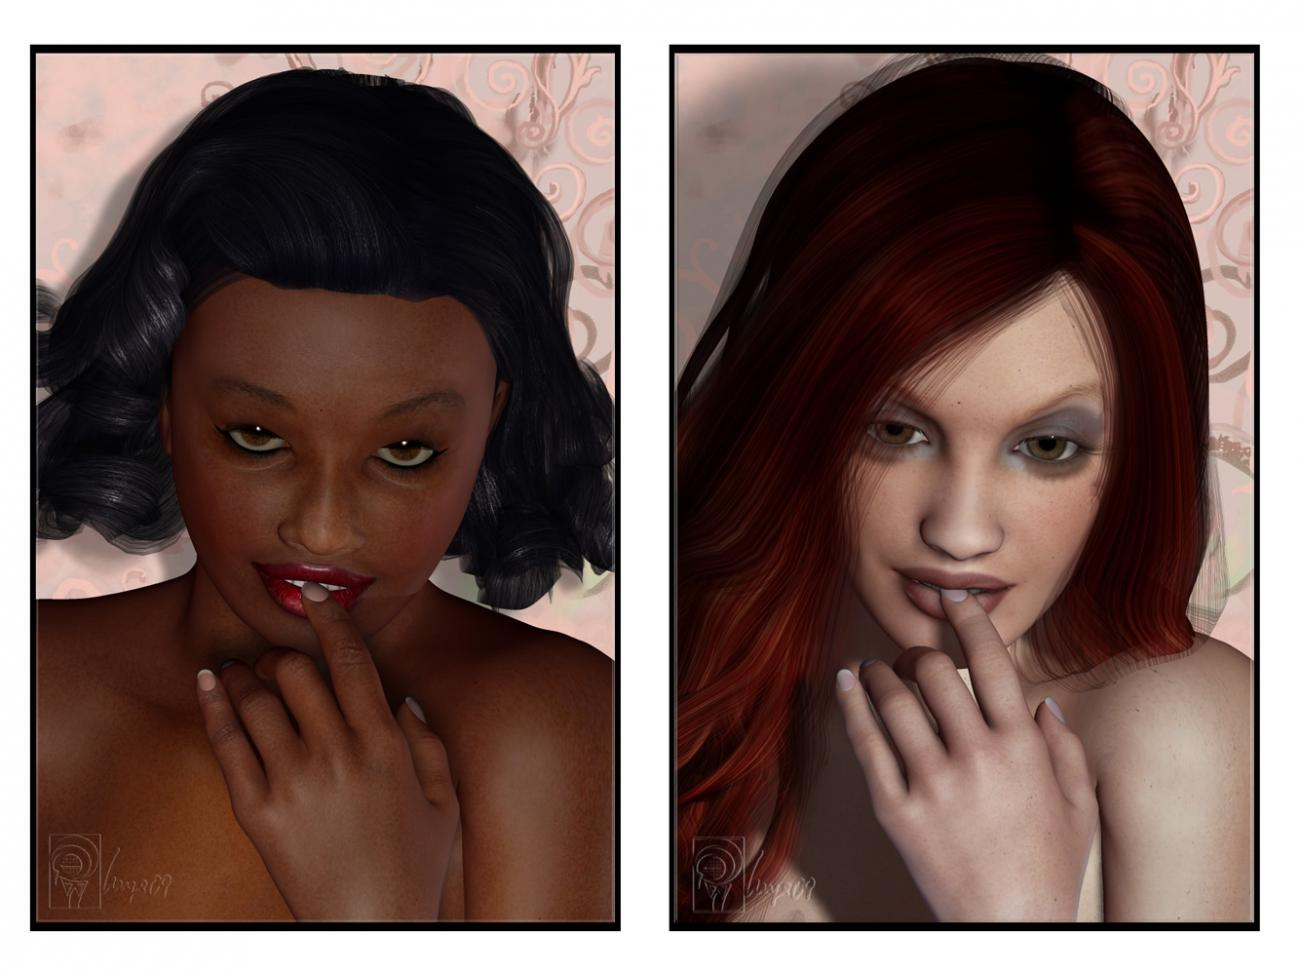 Bedroom eyes 2- expressions2